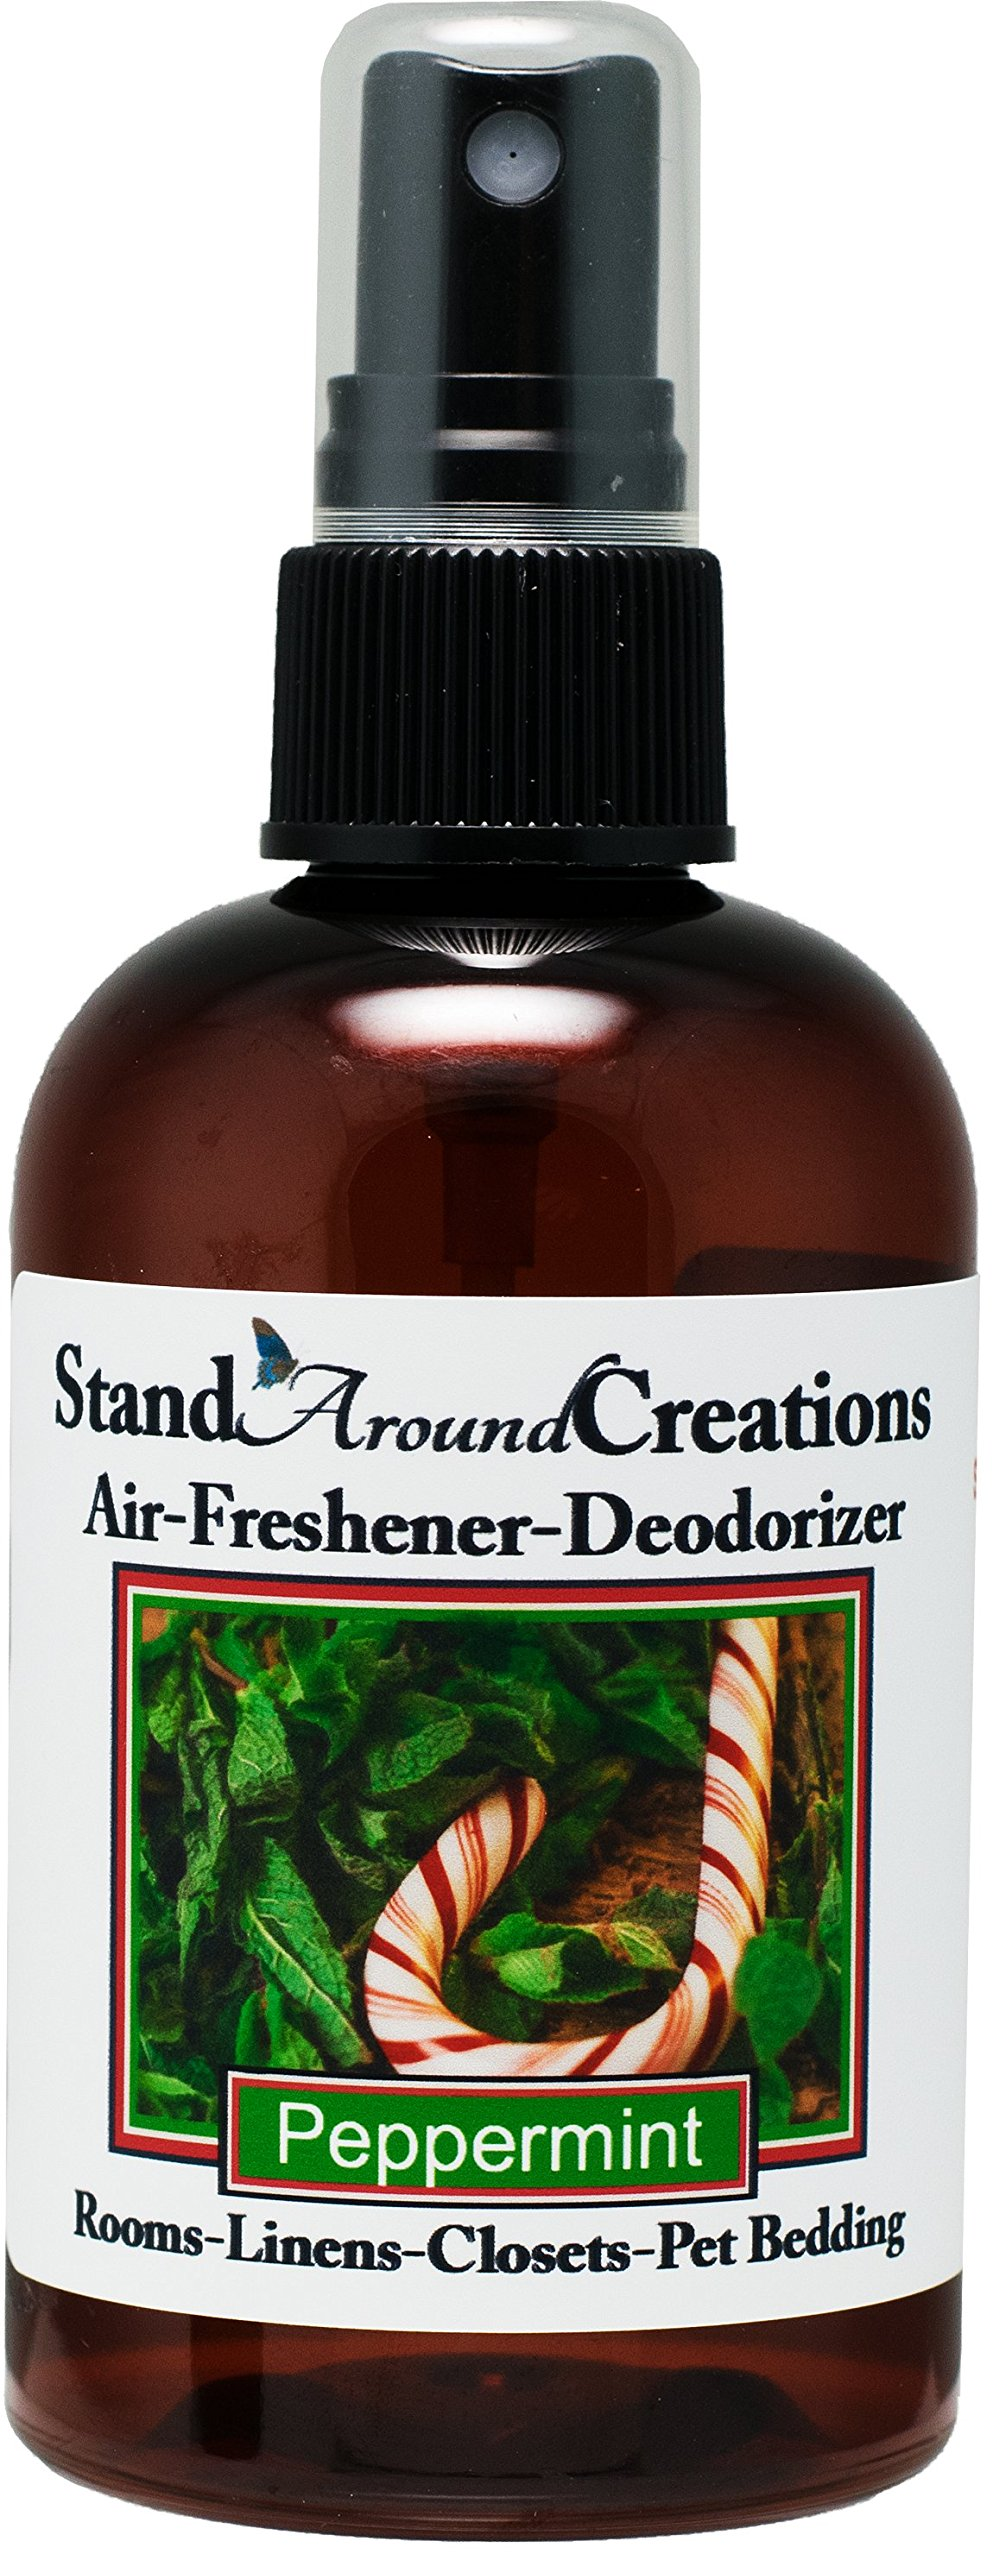 Concentrated Spray For Room / Linen / Room Deodorizer / Air Freshener - 4 fl oz - Scent - Peppermint: Irresistible aroma with mint essential oil to create a ''true to life'' scent of this much-loved winter candy. This fragrance is infused with Cornmint Oil,